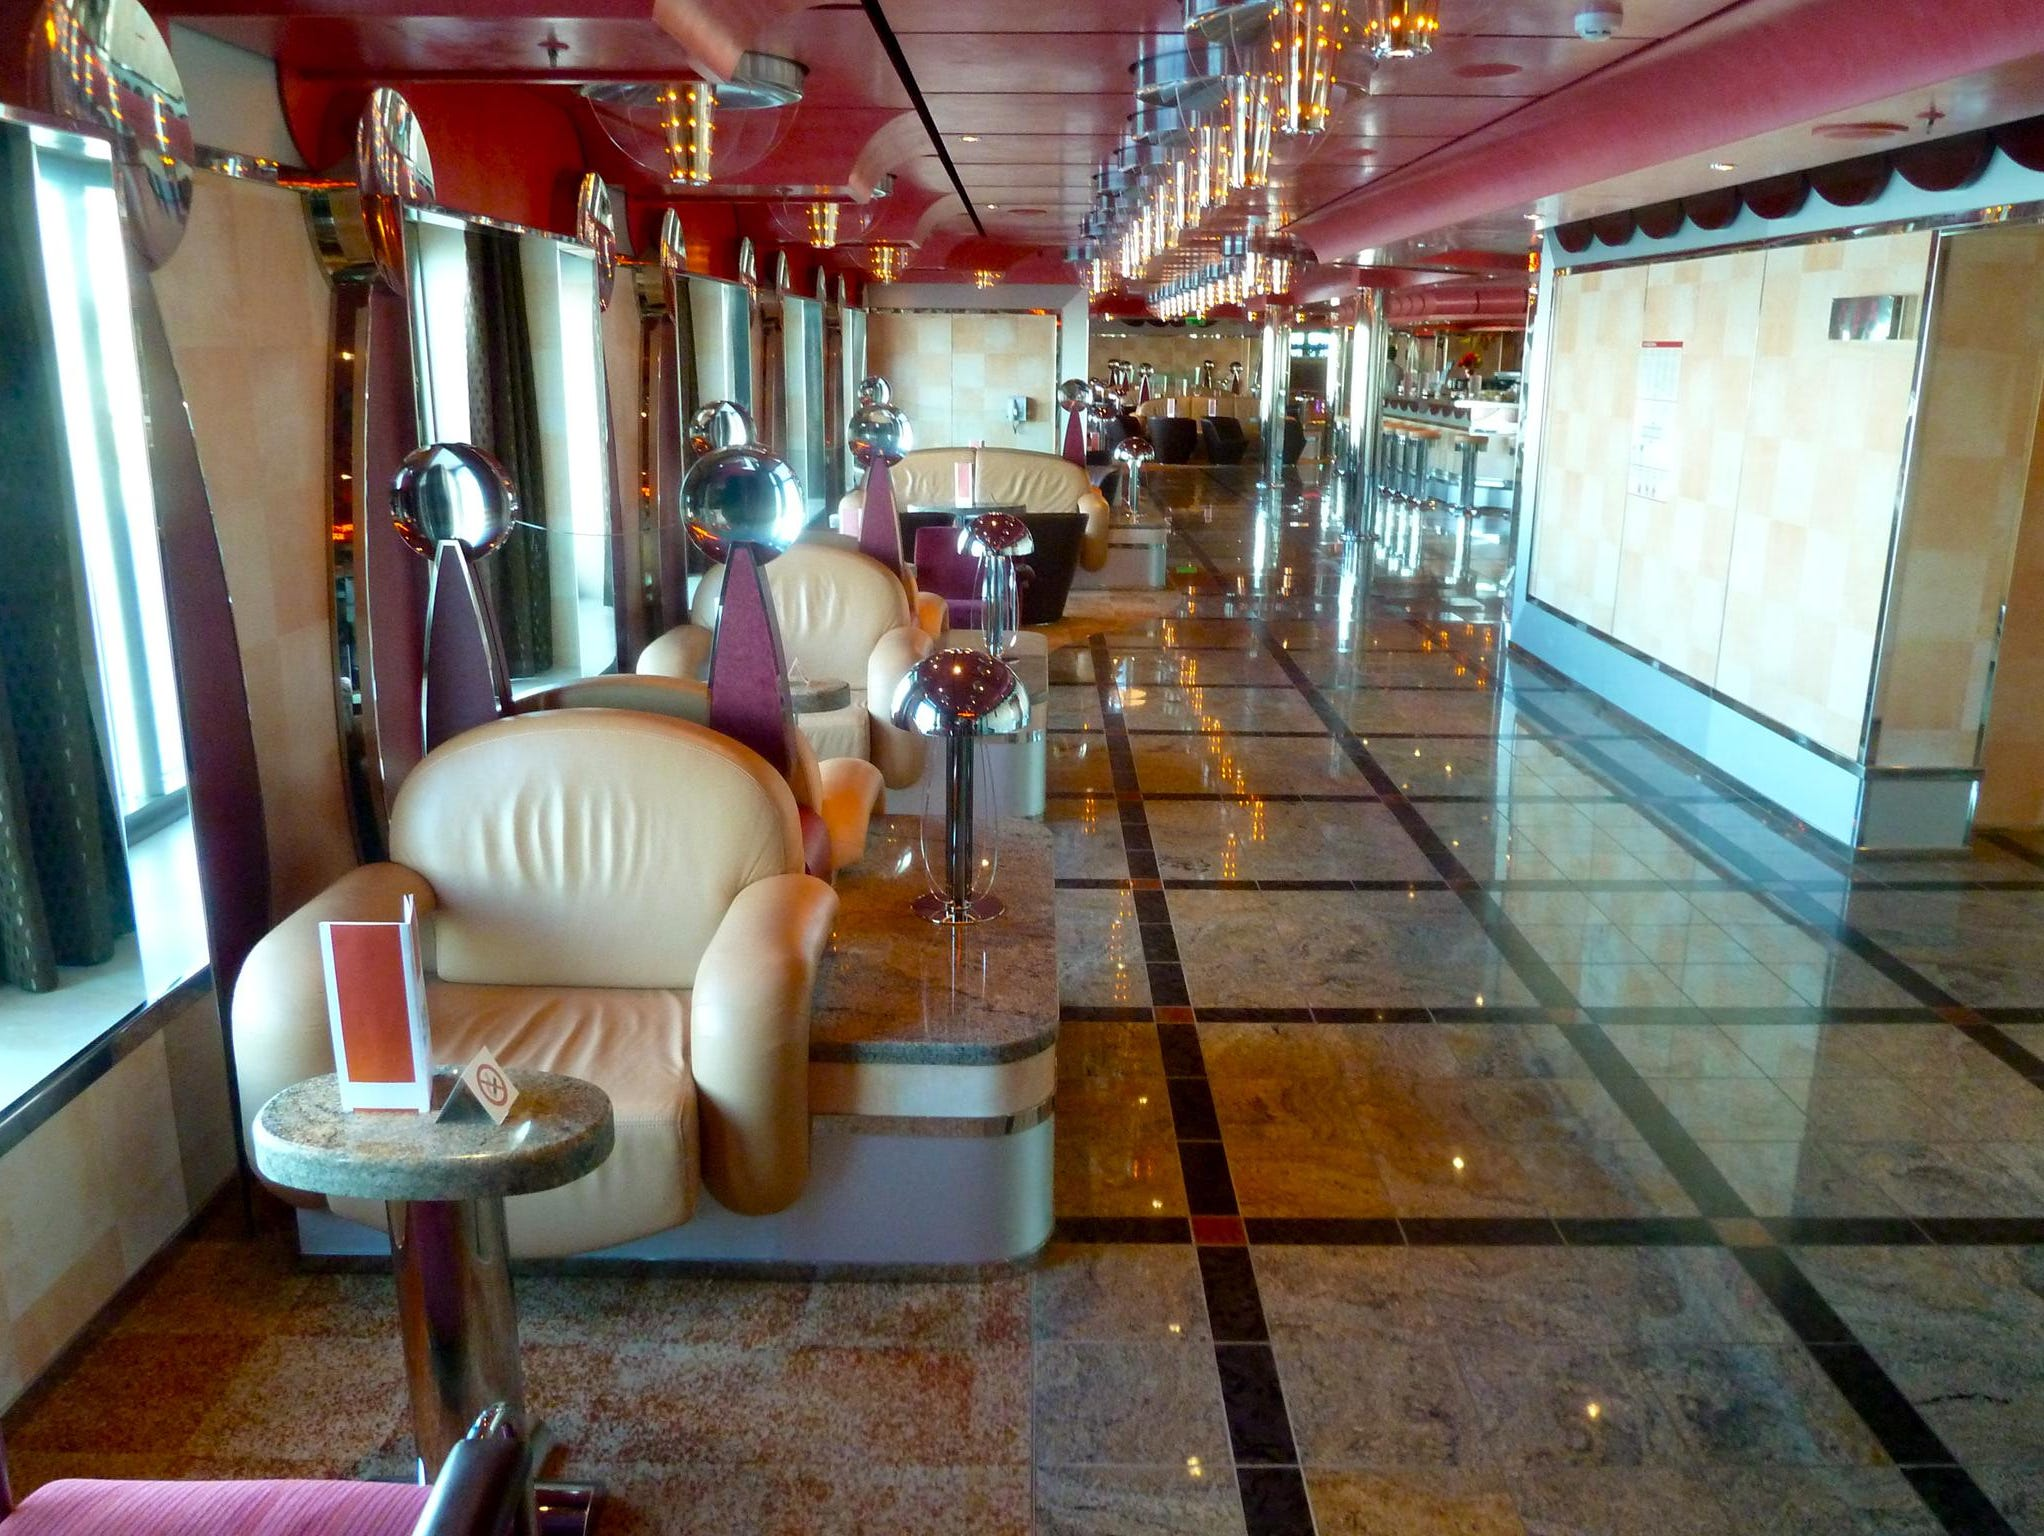 The Gardenia Deck passage continues aft on the starboard side with the Lounge and Bar Alcazar (shown facing aft), another bar that is a favored gathering spot for pre- and post-dinner drinks.